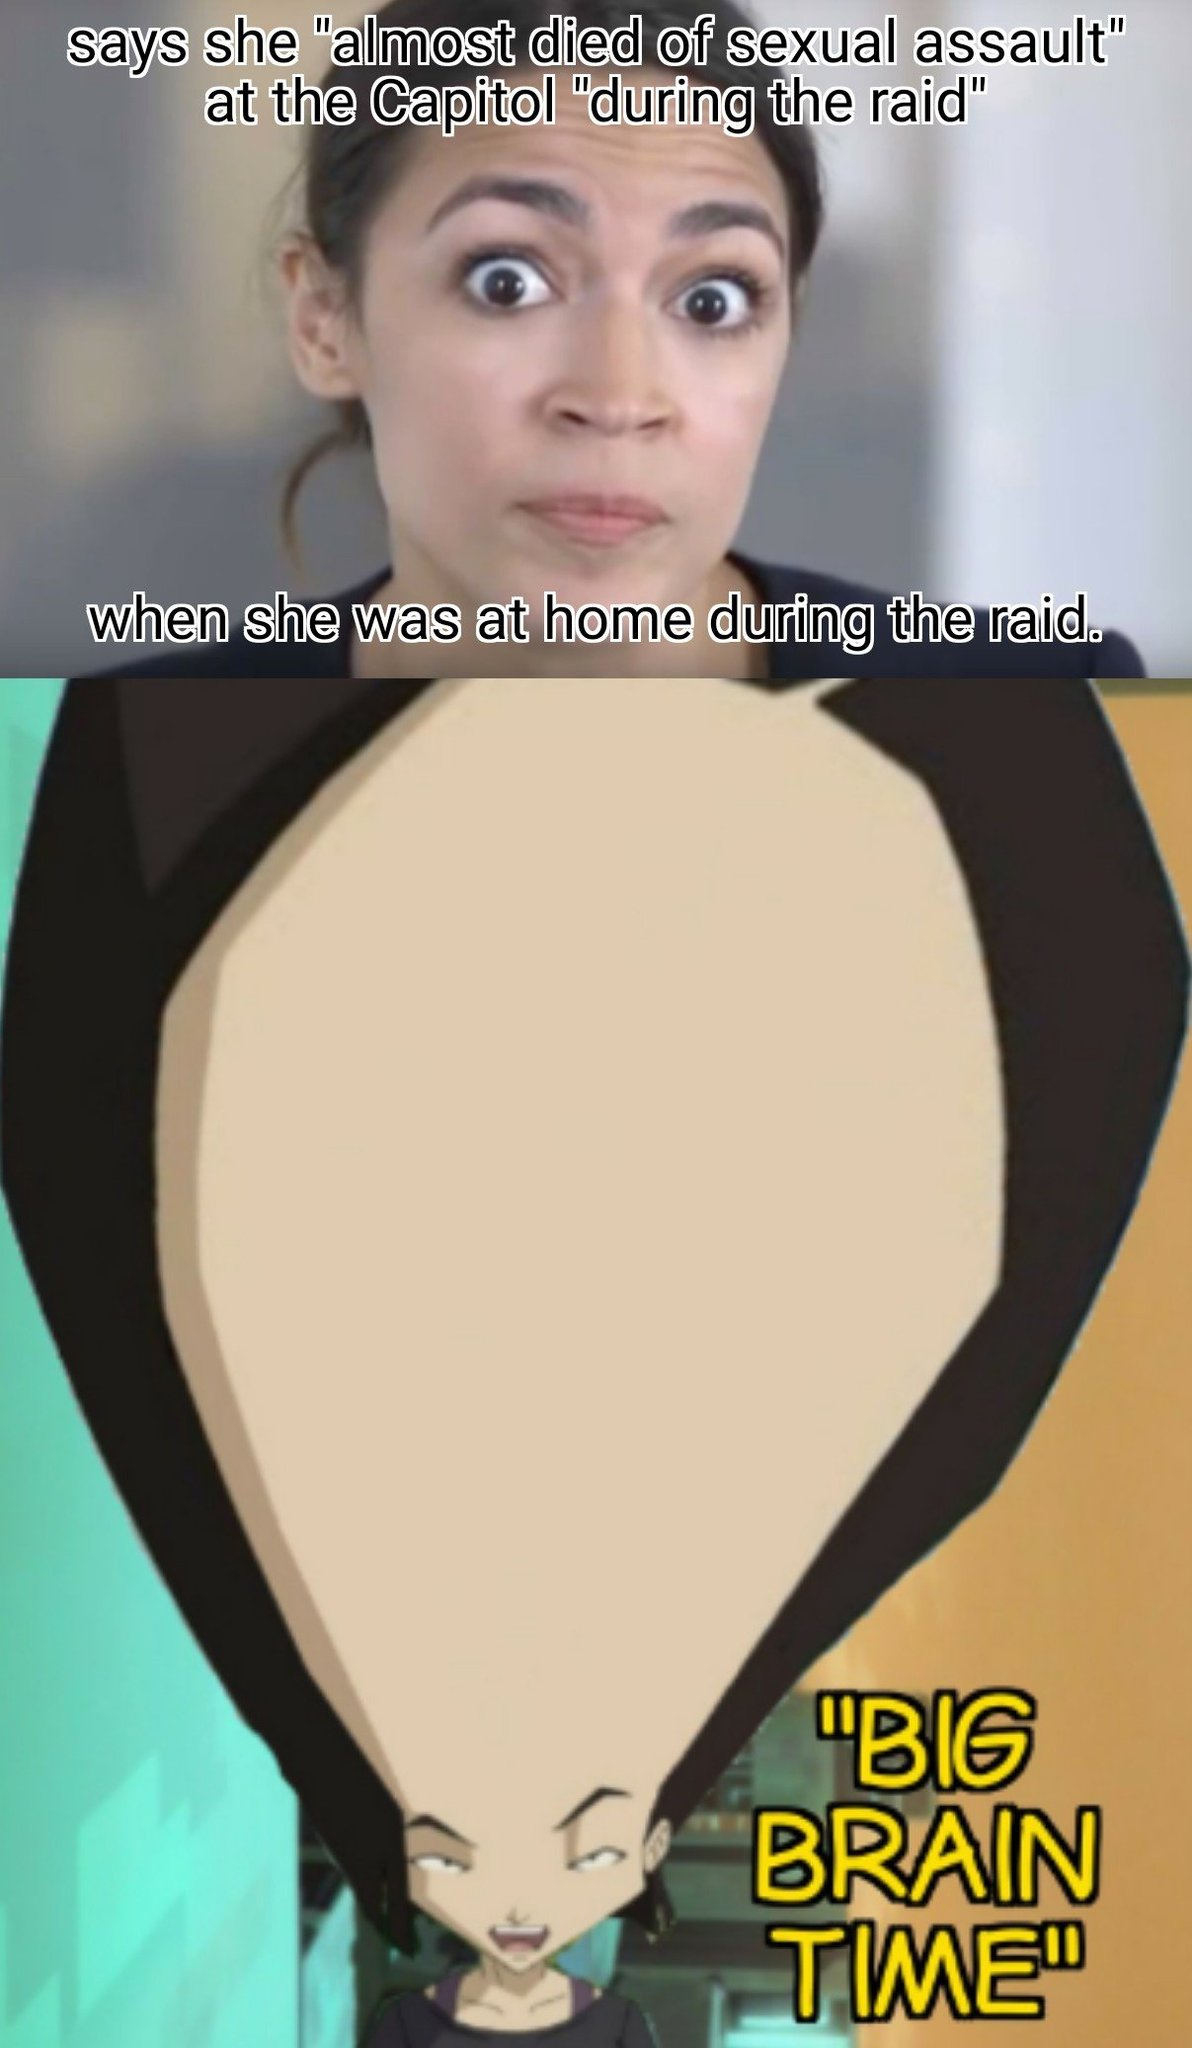 Sorry if not right format. I just worked hard on the edit of her huge fucking forehead - meme